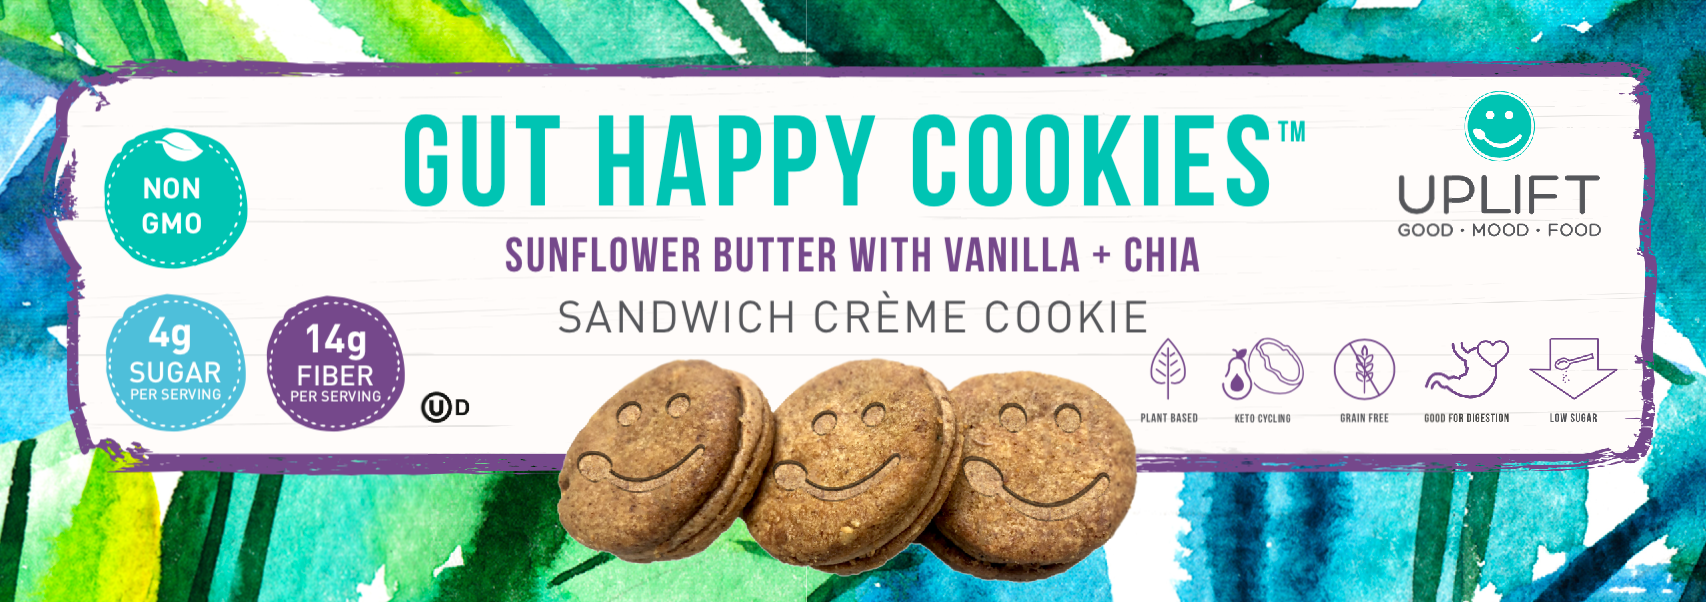 uplift food gut happy cookies prebiotic functional snacks high fiber probiotics